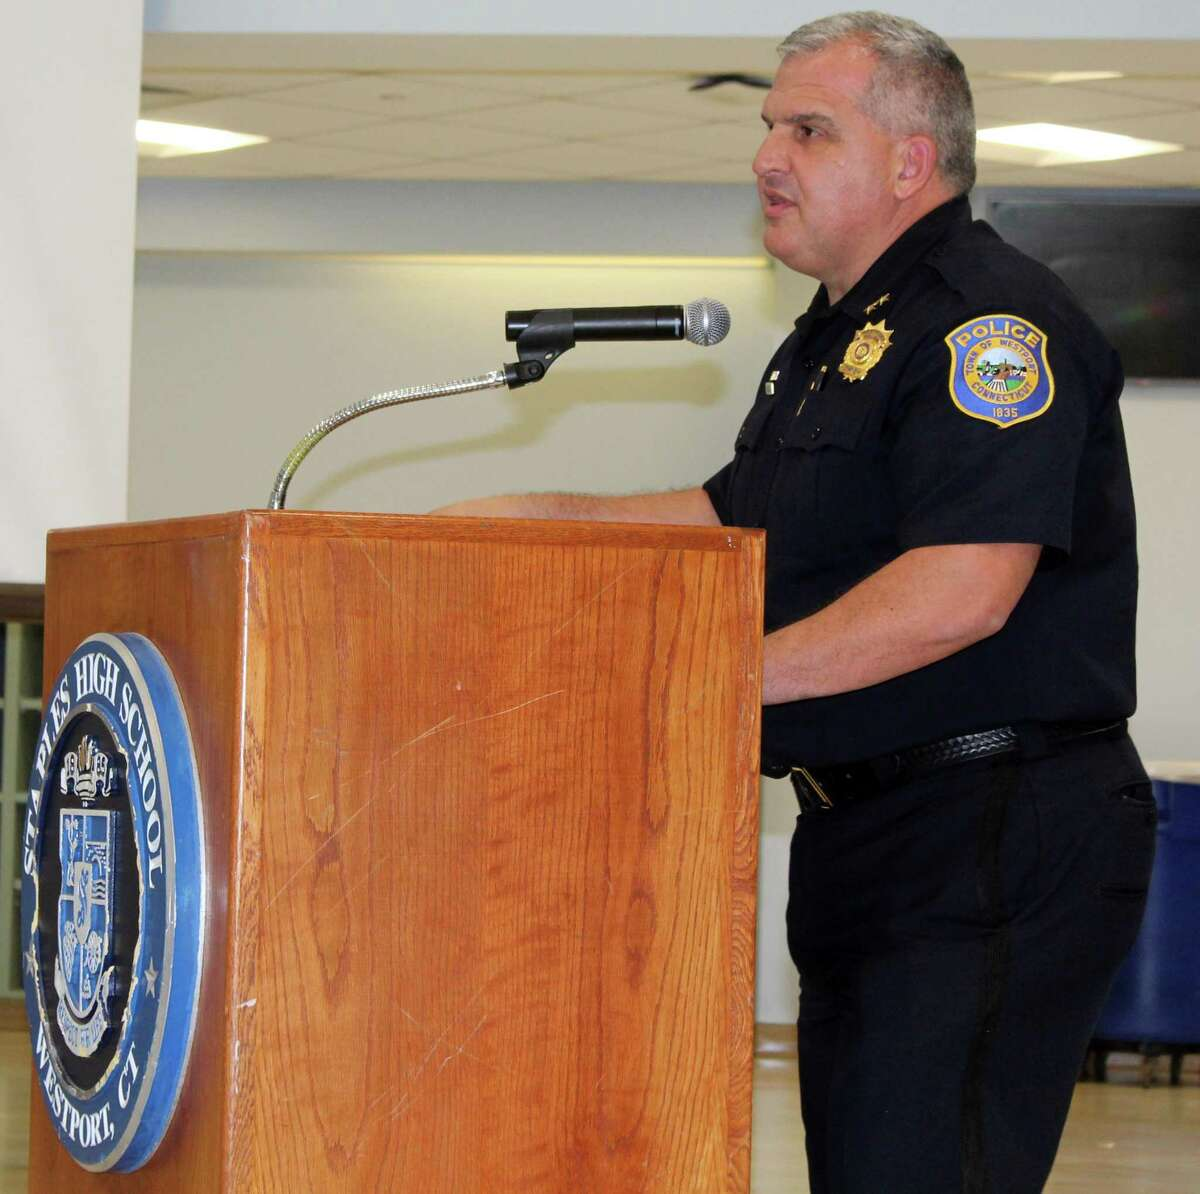 In this file photo, Westport Police Chief Foti Koskinas speaking at a Board of Education meeting at Staples High School.